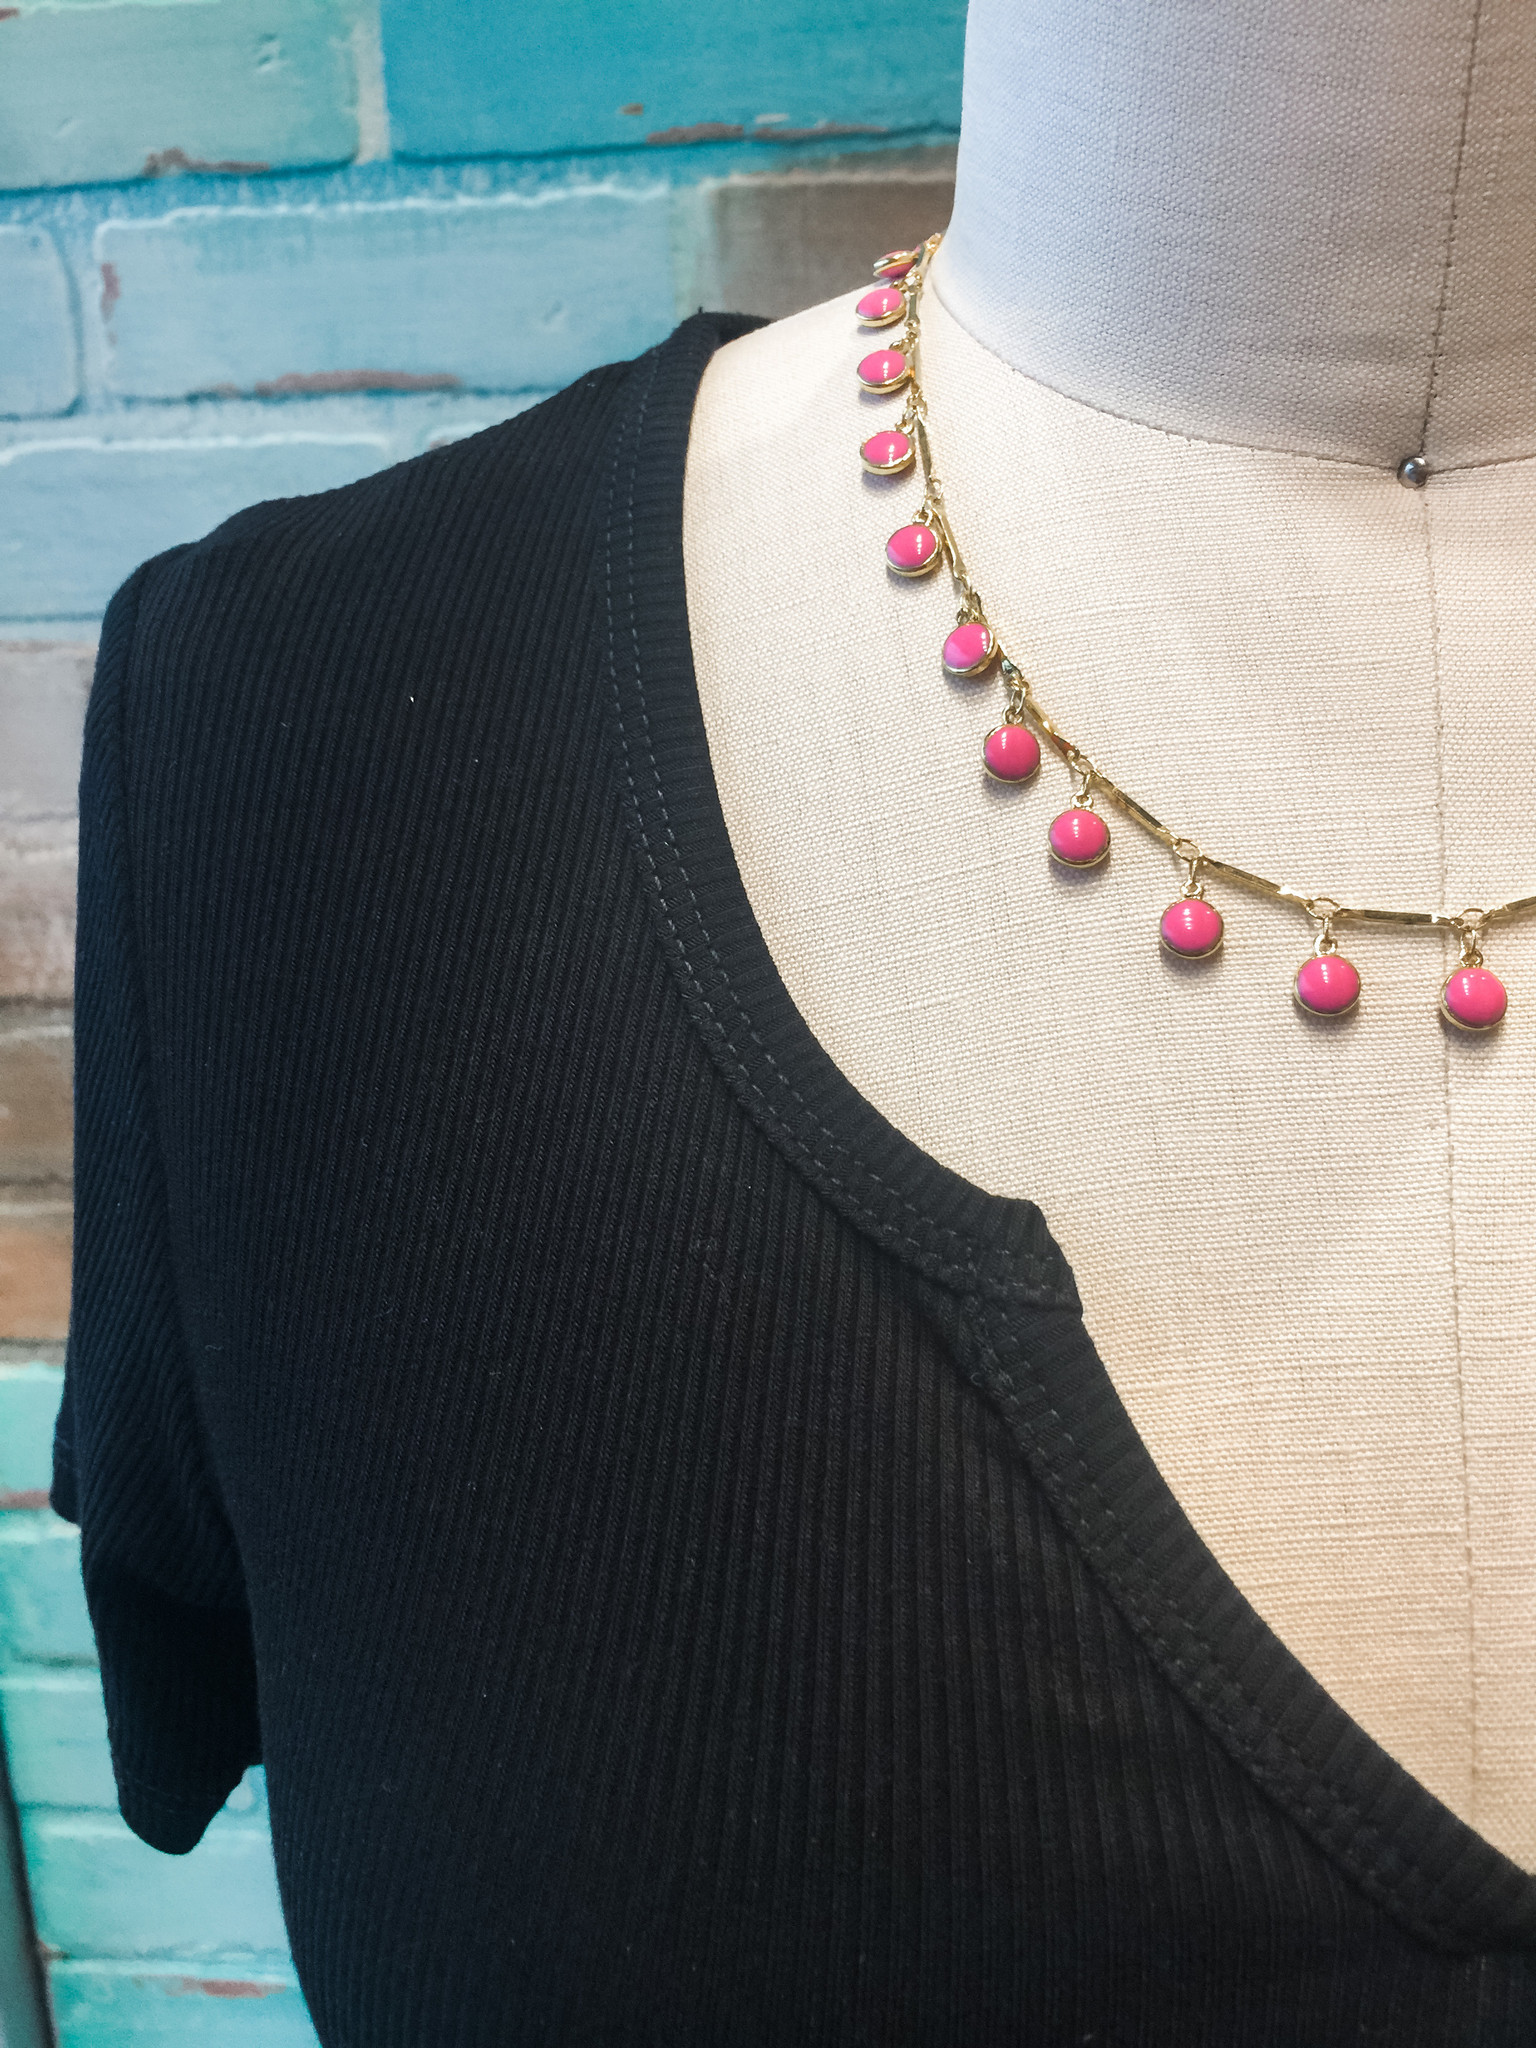 Mary Kathryn Designs Candy Drops Necklace